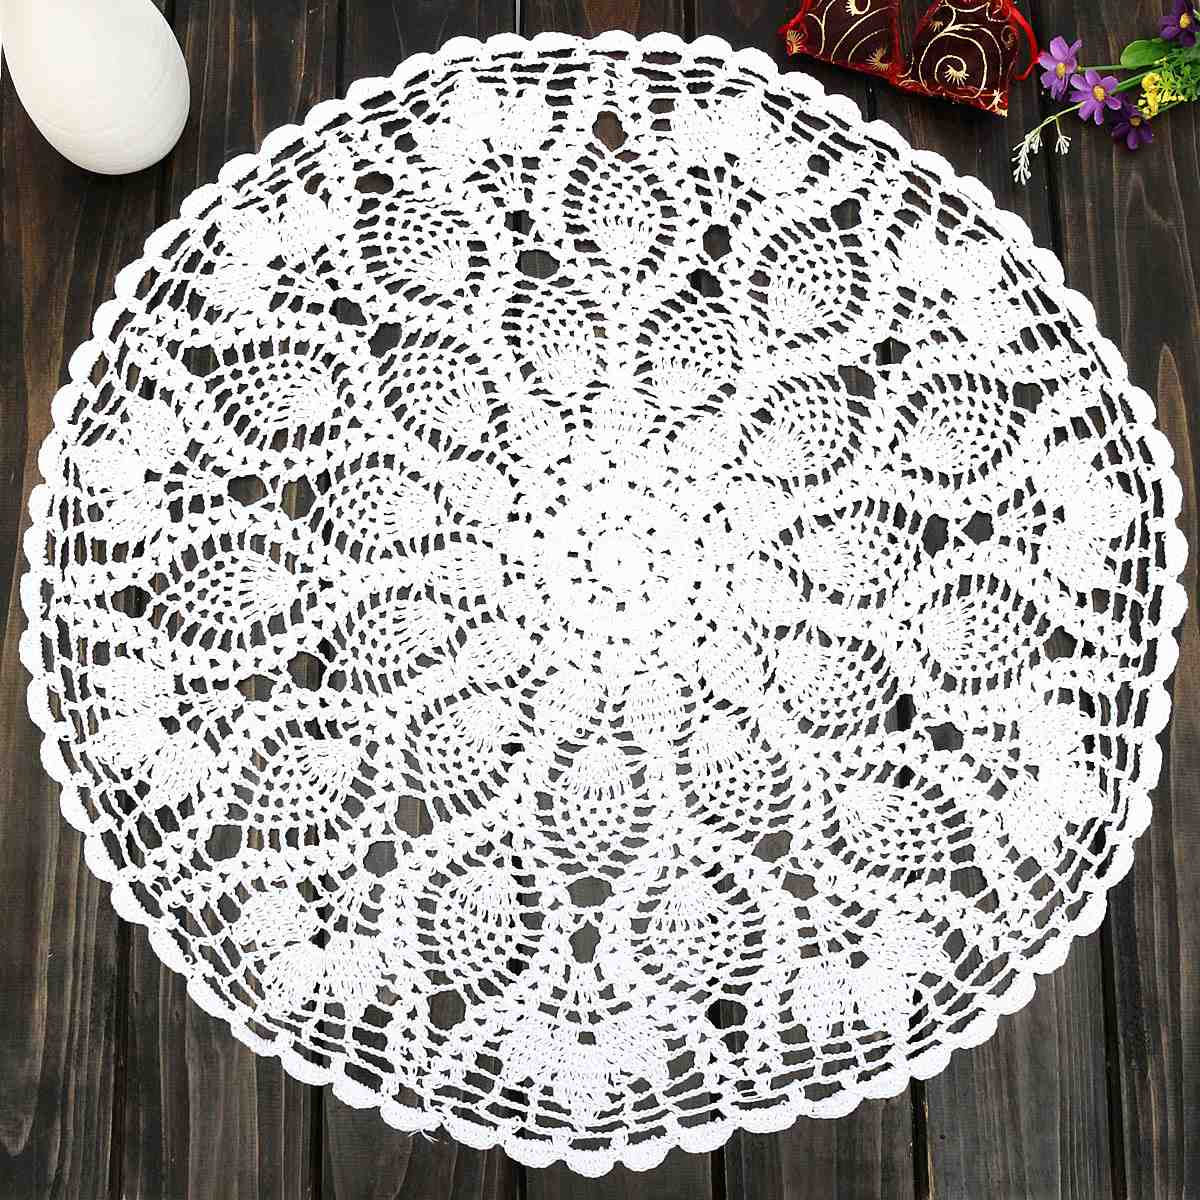 "Vintage 23"" Round Cotton White Feather Hand Crochet Doilies Wedding Event Table Decor Doily Placemat Knit TableCloth(China (Mainland))"